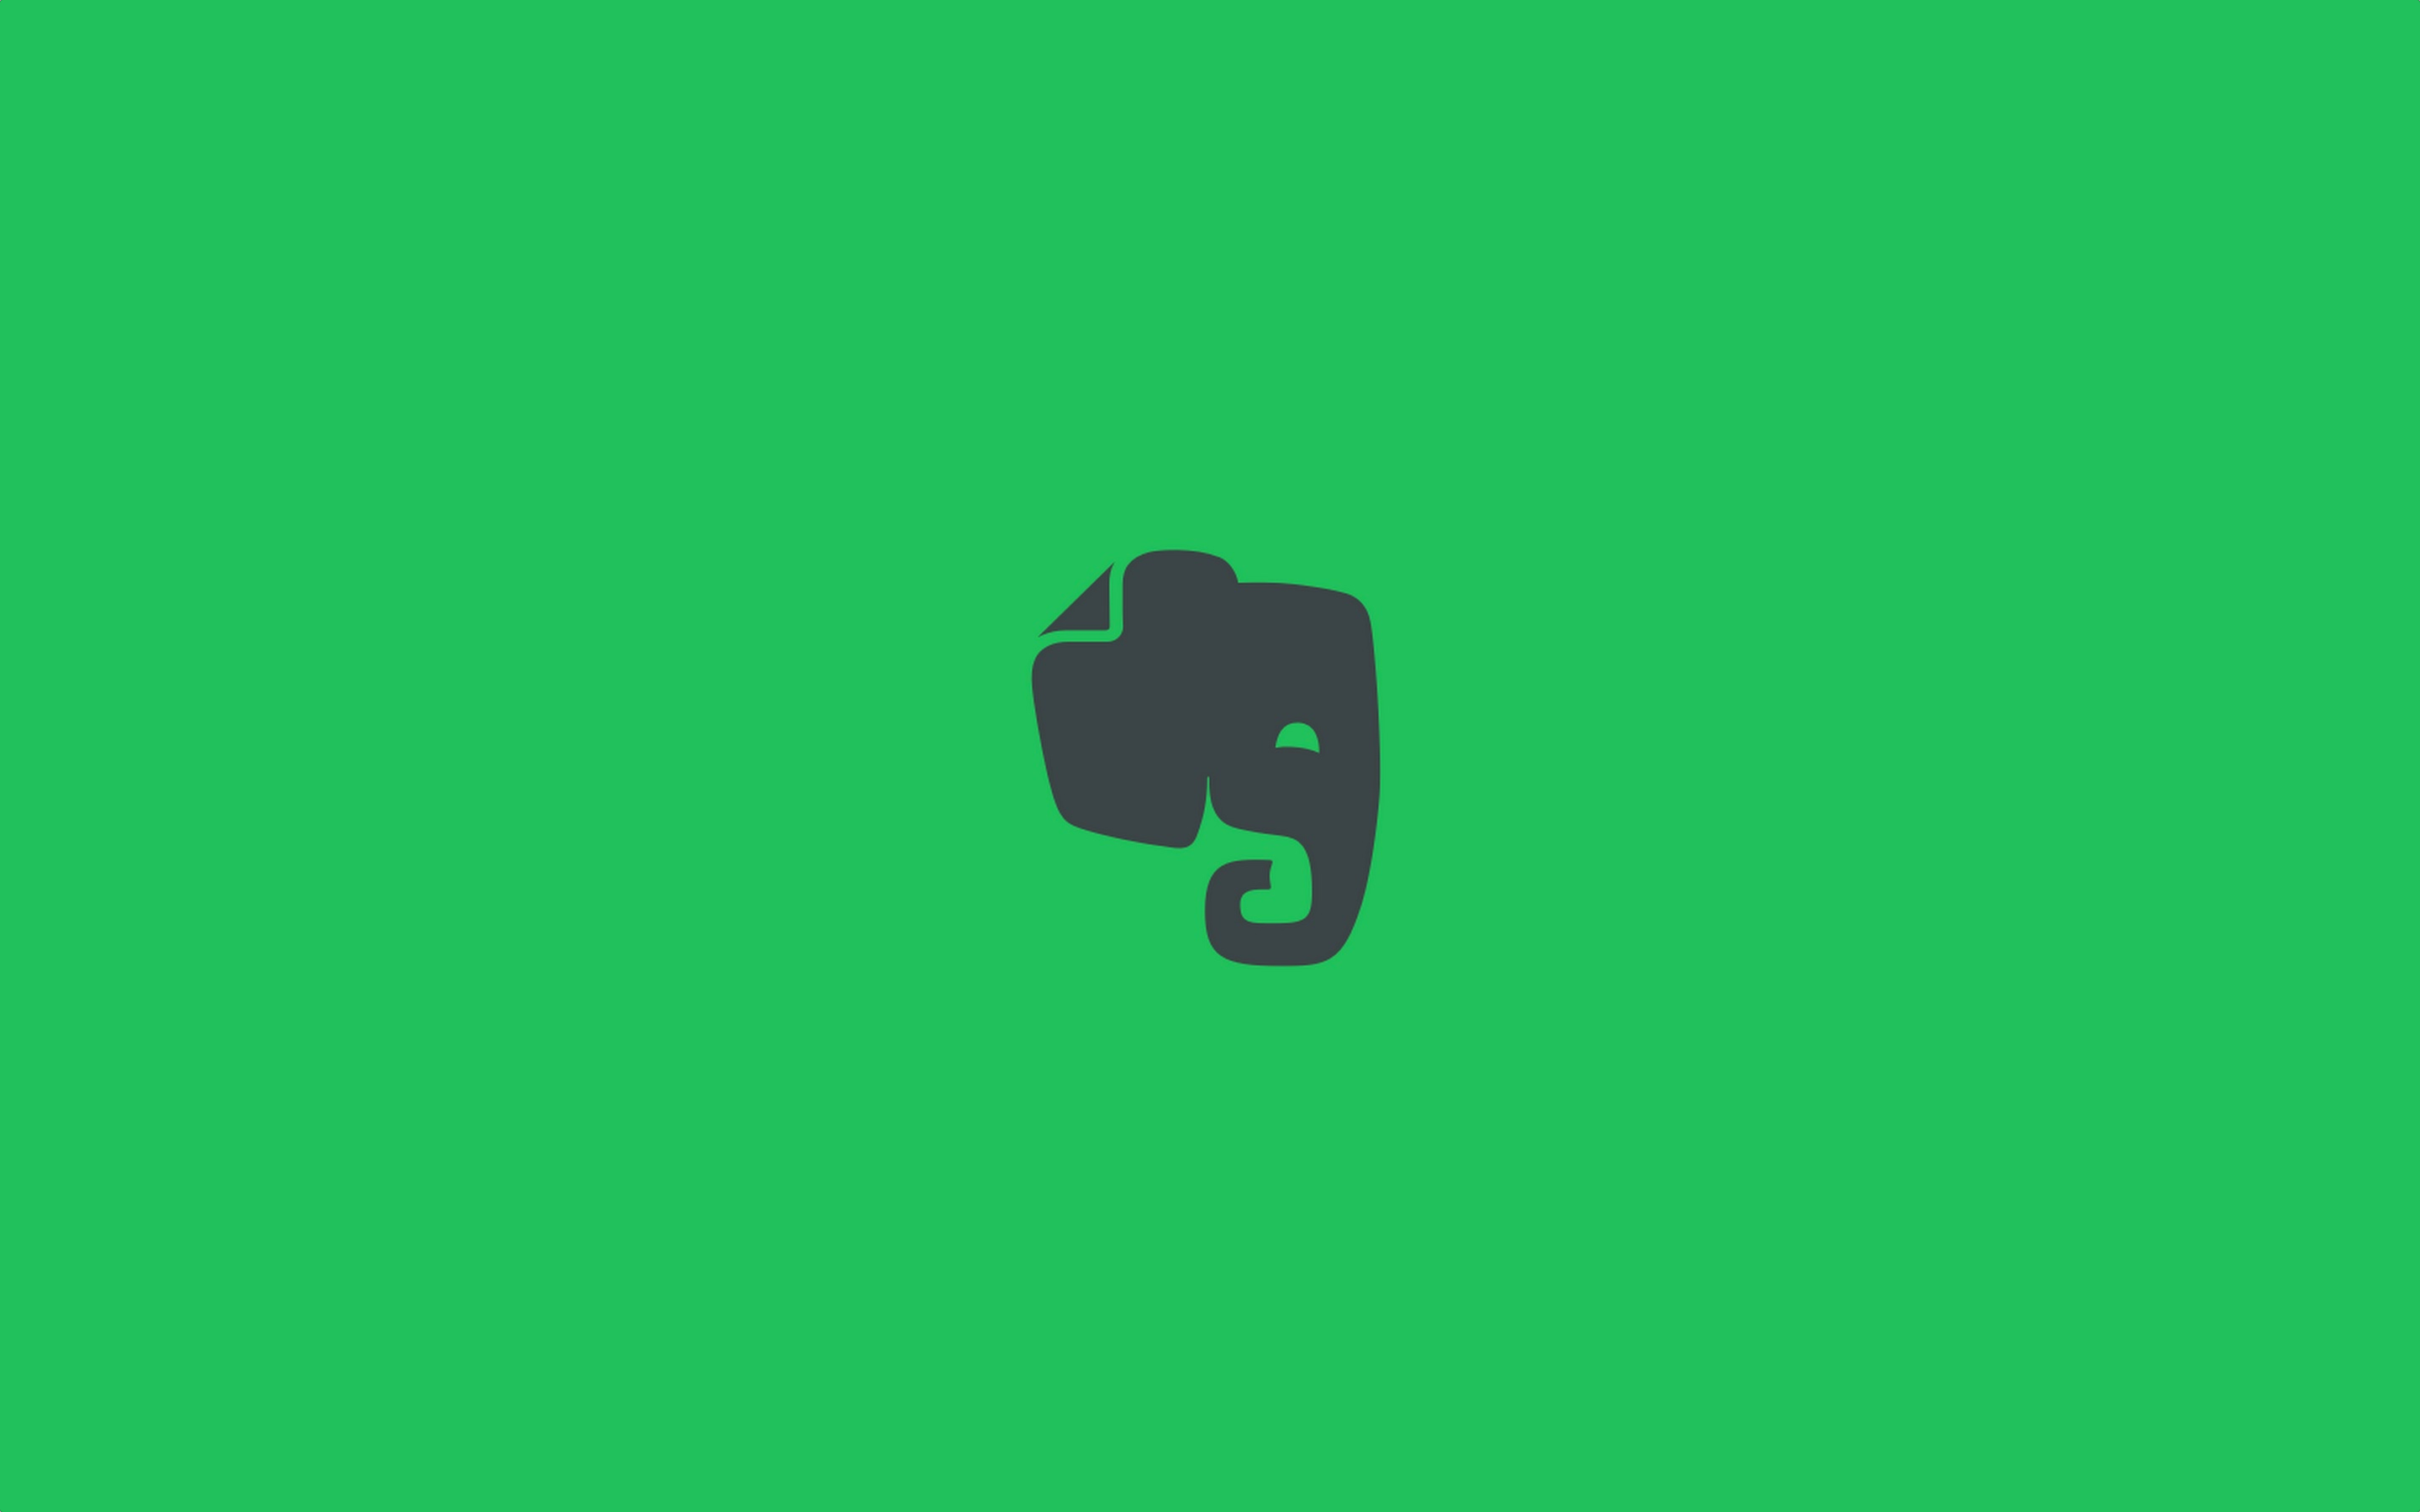 Introducere in Evernote